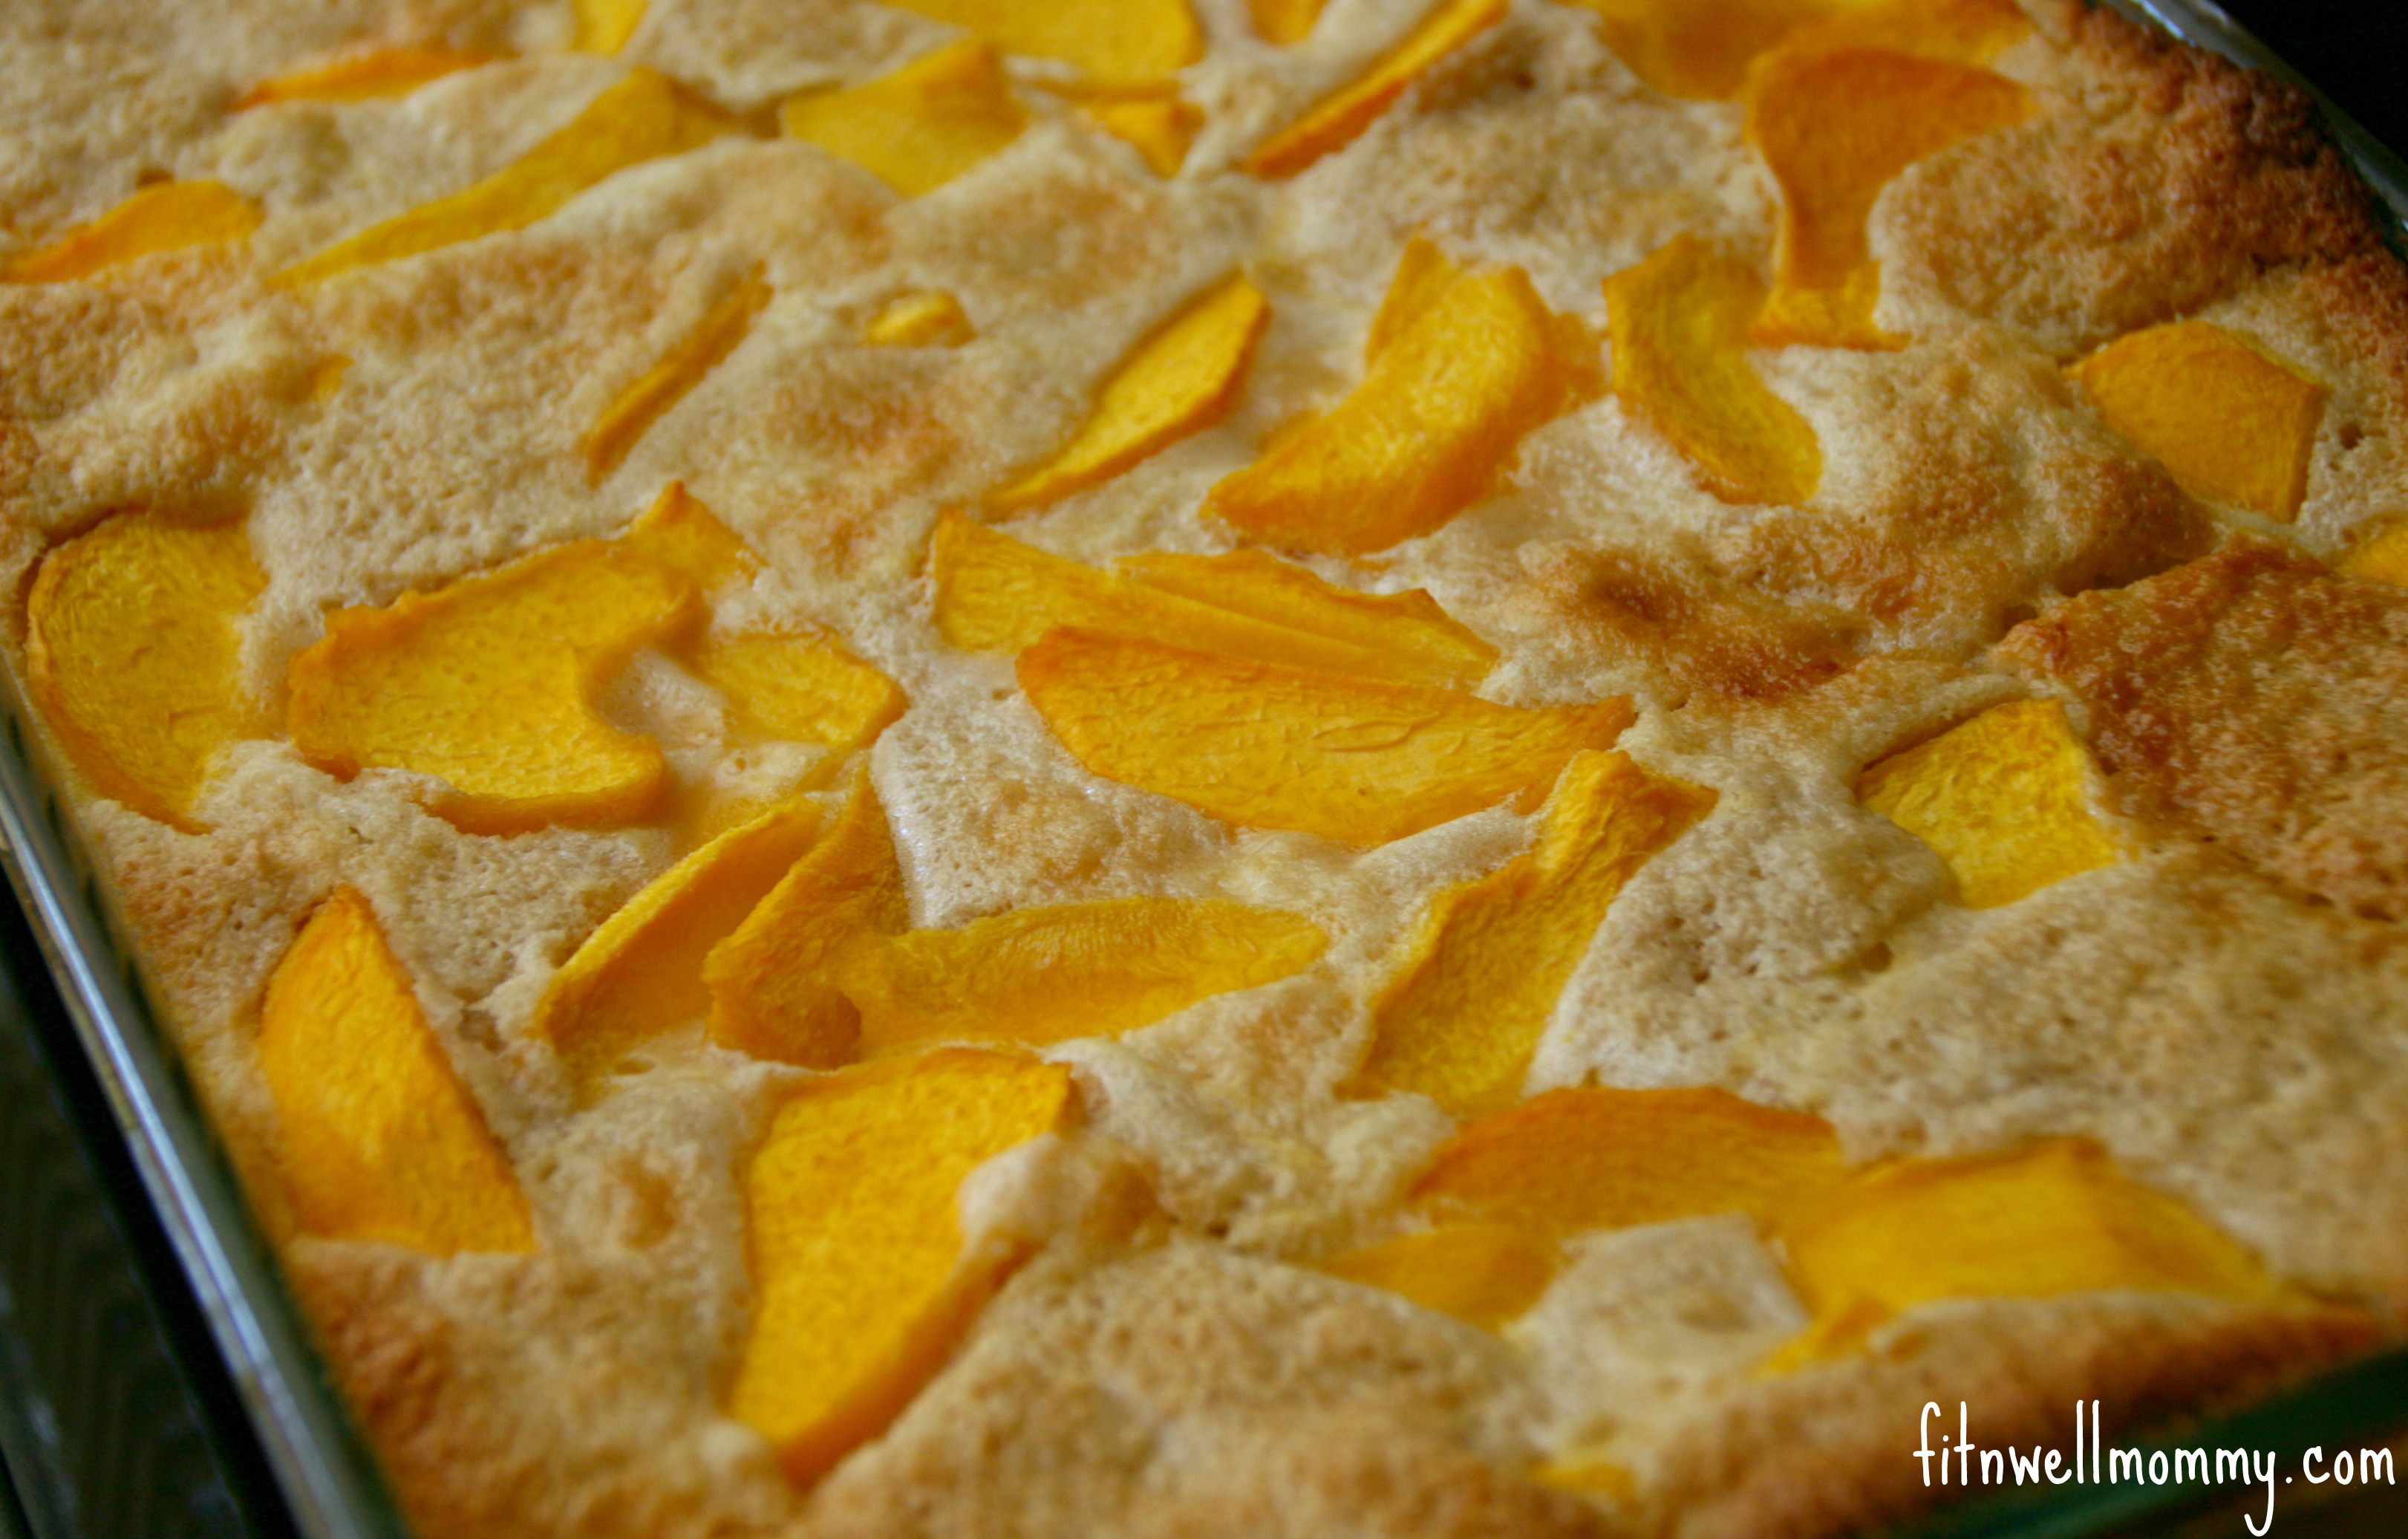 Quick and Easy Peach Cobbler Made With Oat Flour - Deliciously Fit